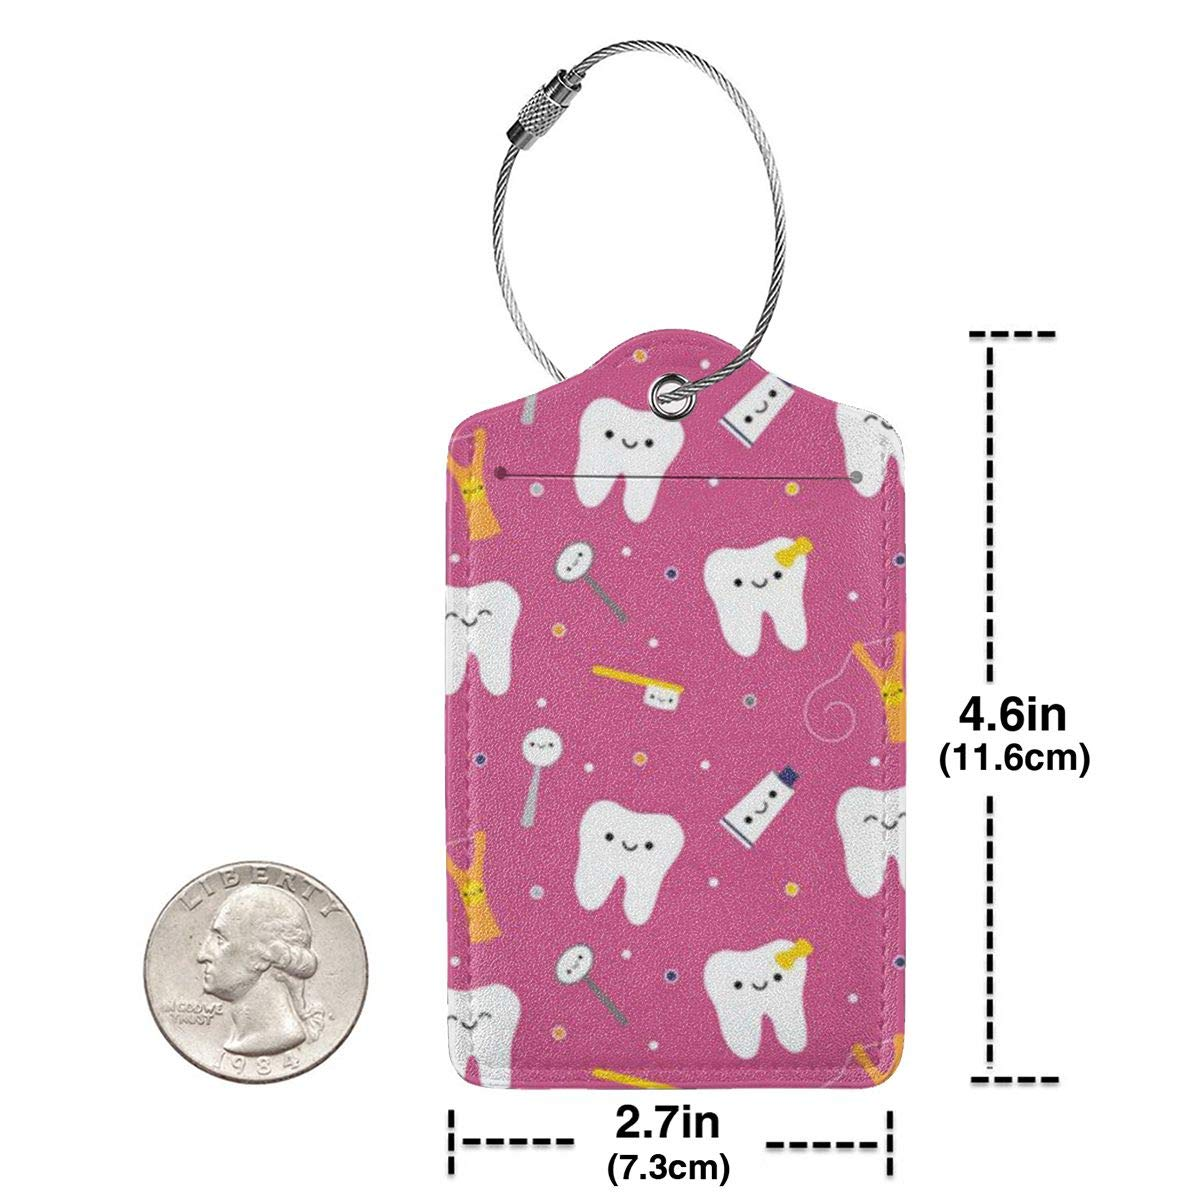 GoldK Dental Dentist Leather Luggage Tags Baggage Bag Instrument Tag Travel Labels Accessories with Privacy Cover